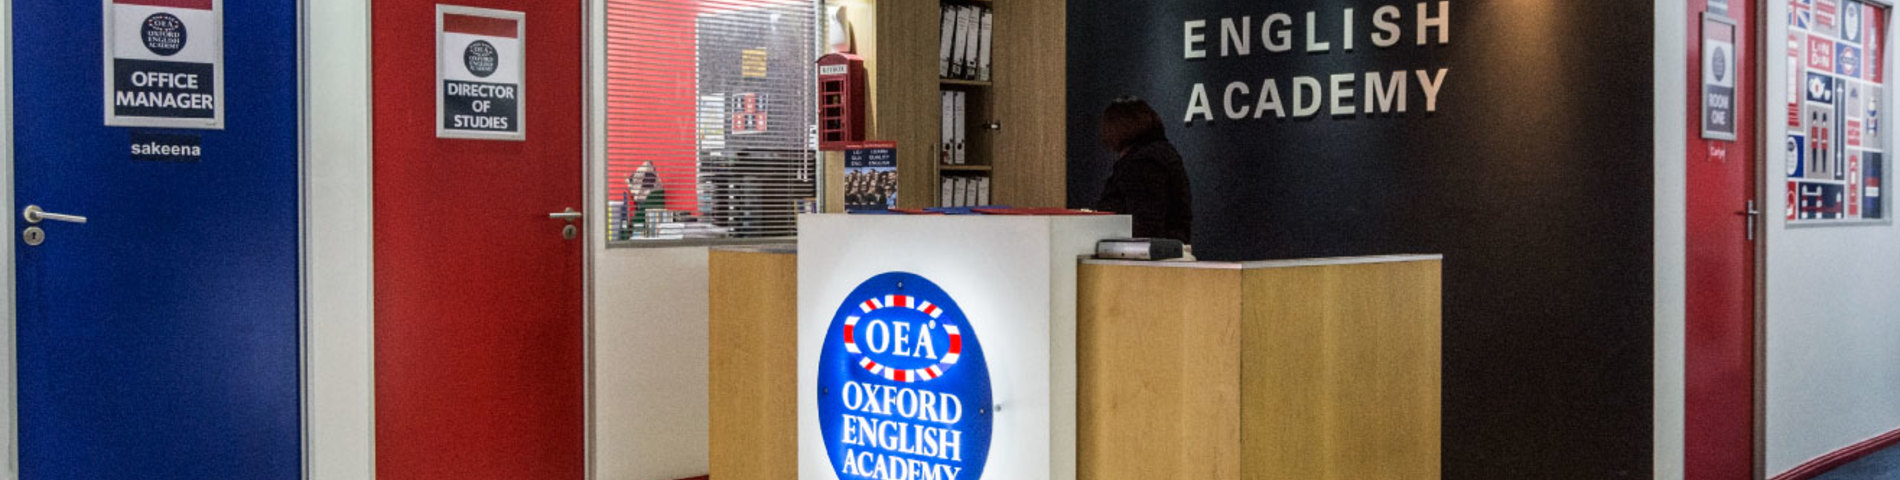 Oxford English Academy picture 1